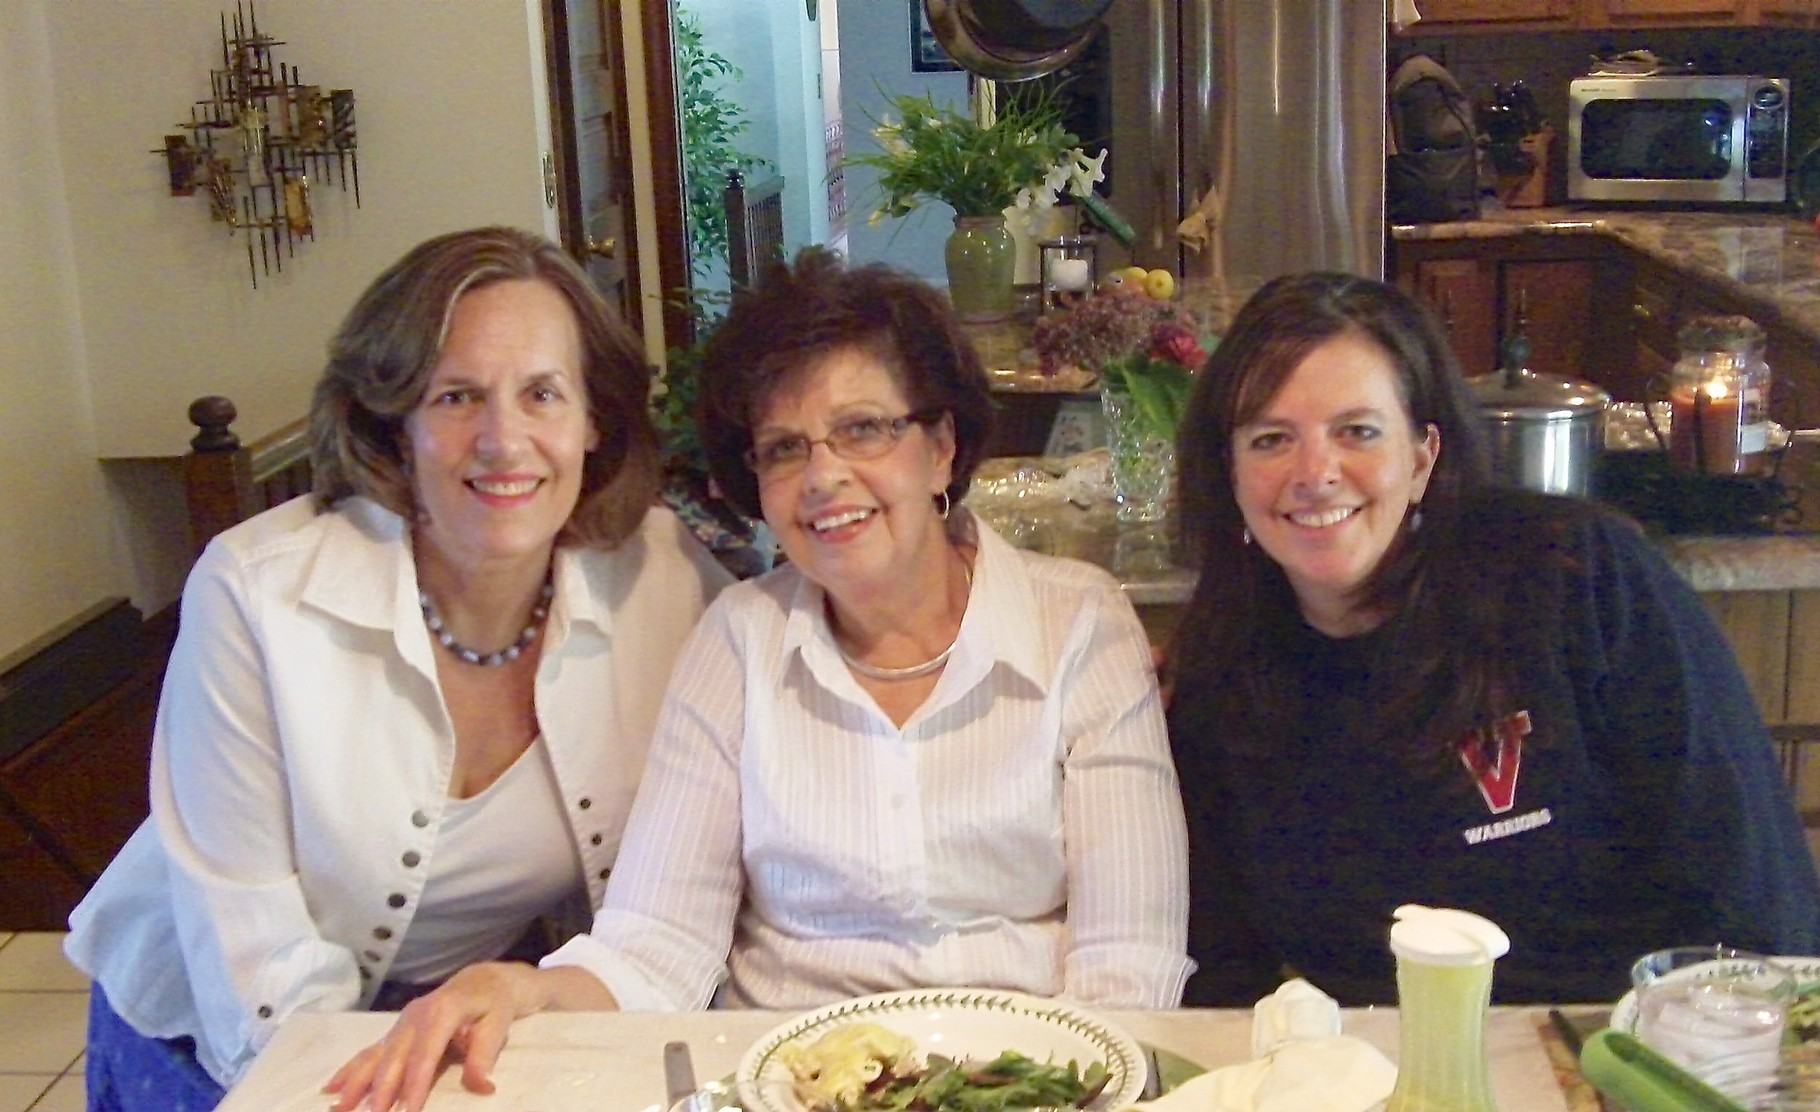 Lorraine, Kathy, and Cindy 2015, Connecticut